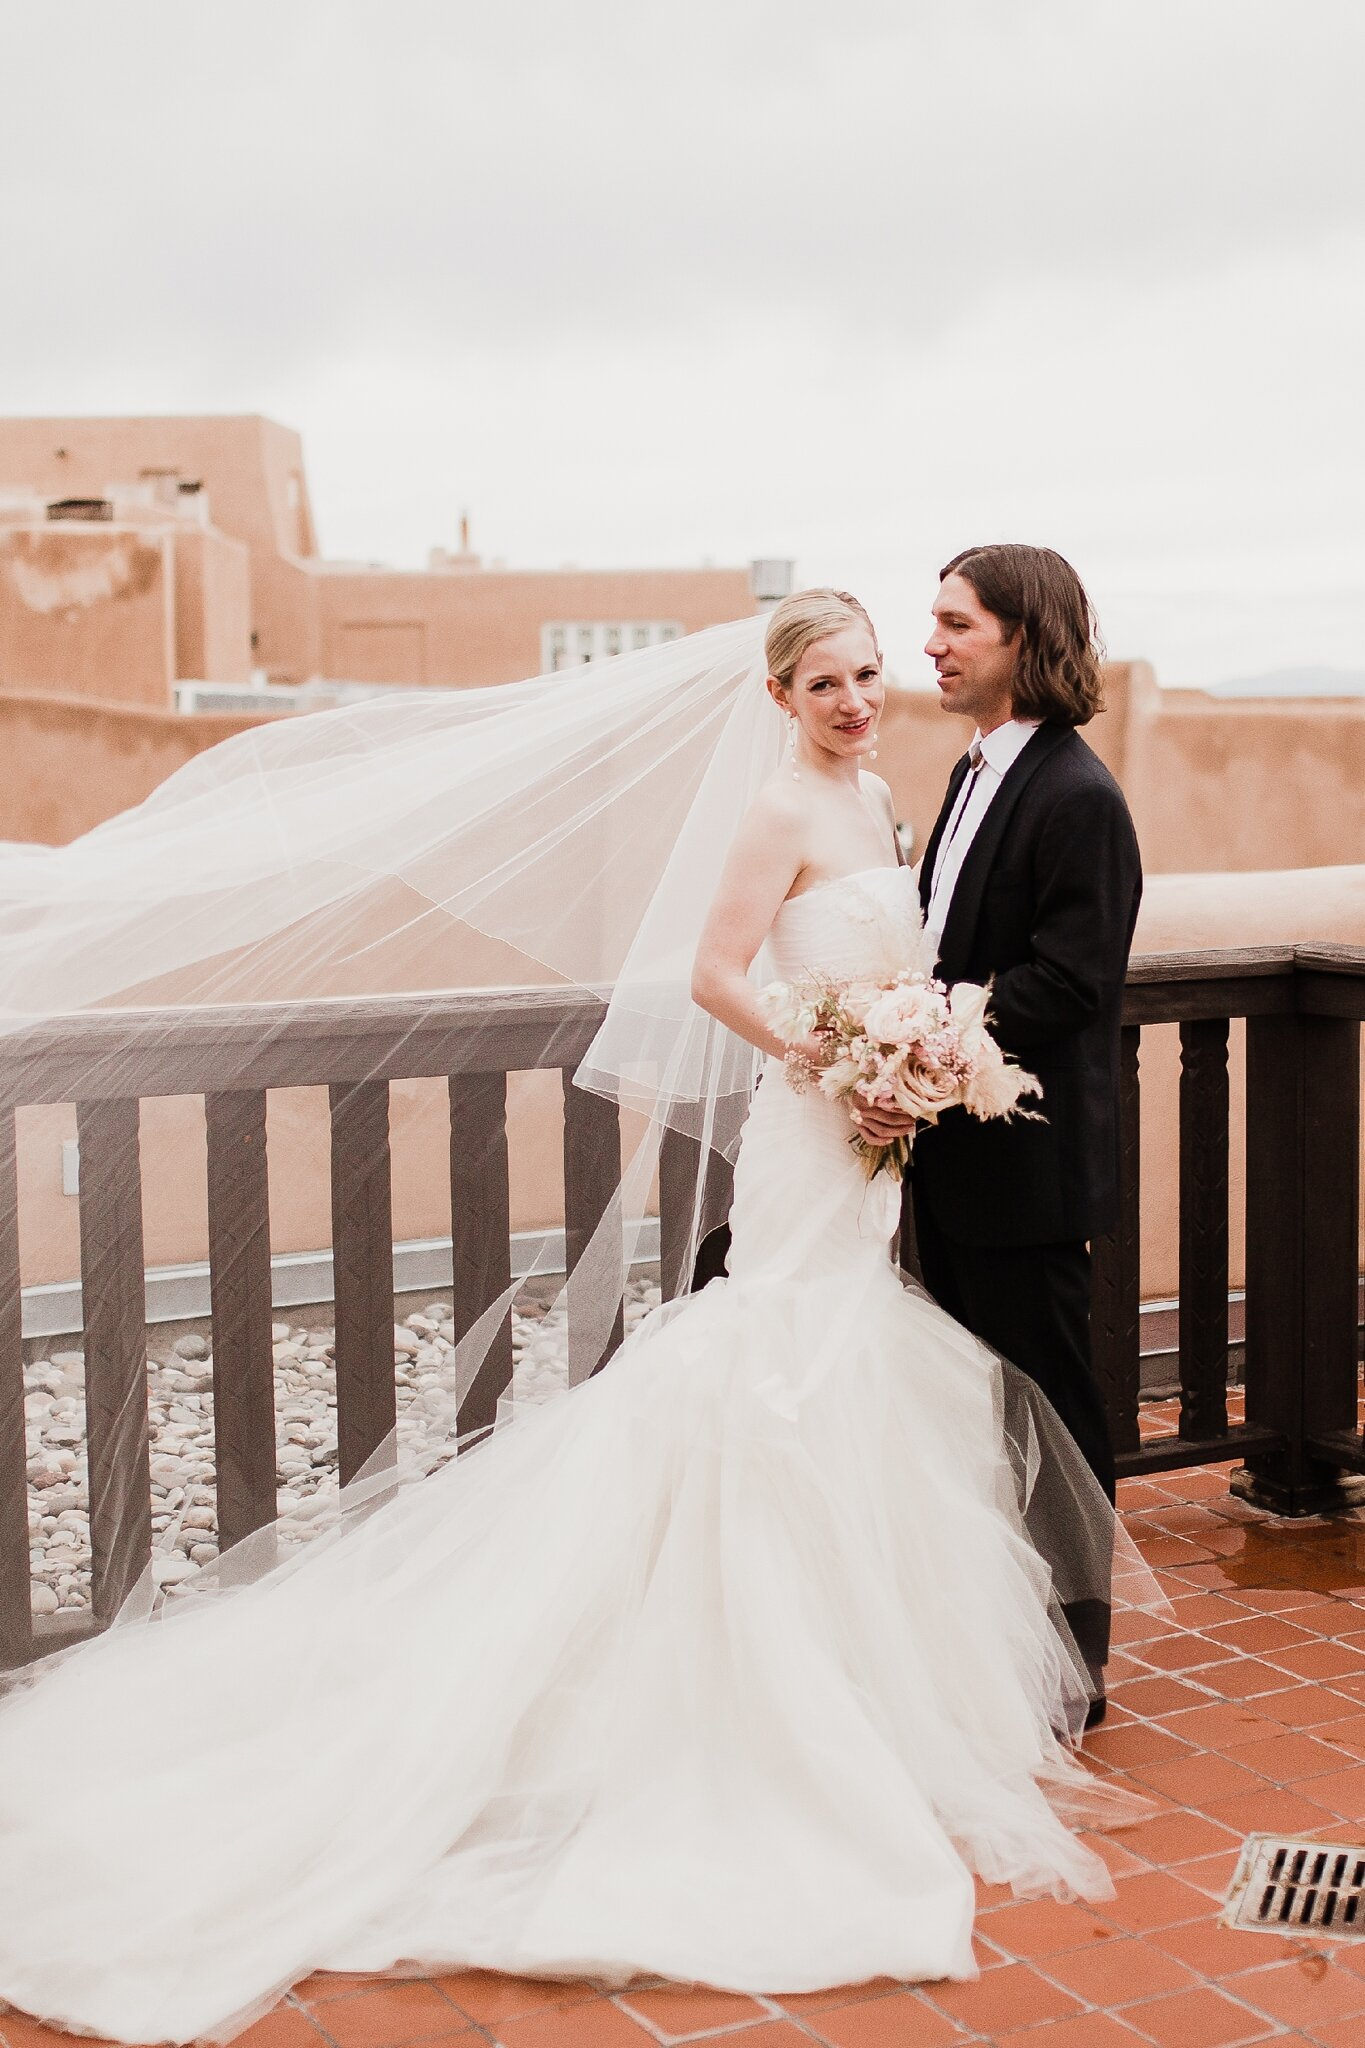 Alicia+lucia+photography+-+albuquerque+wedding+photographer+-+santa+fe+wedding+photography+-+new+mexico+wedding+photographer+-+new+mexico+wedding+-+la+fonda+wedding+-+la+fonda+on+the+plaza+-+santa+fe+wedding+-+brooklyn+bride_0091.jpg